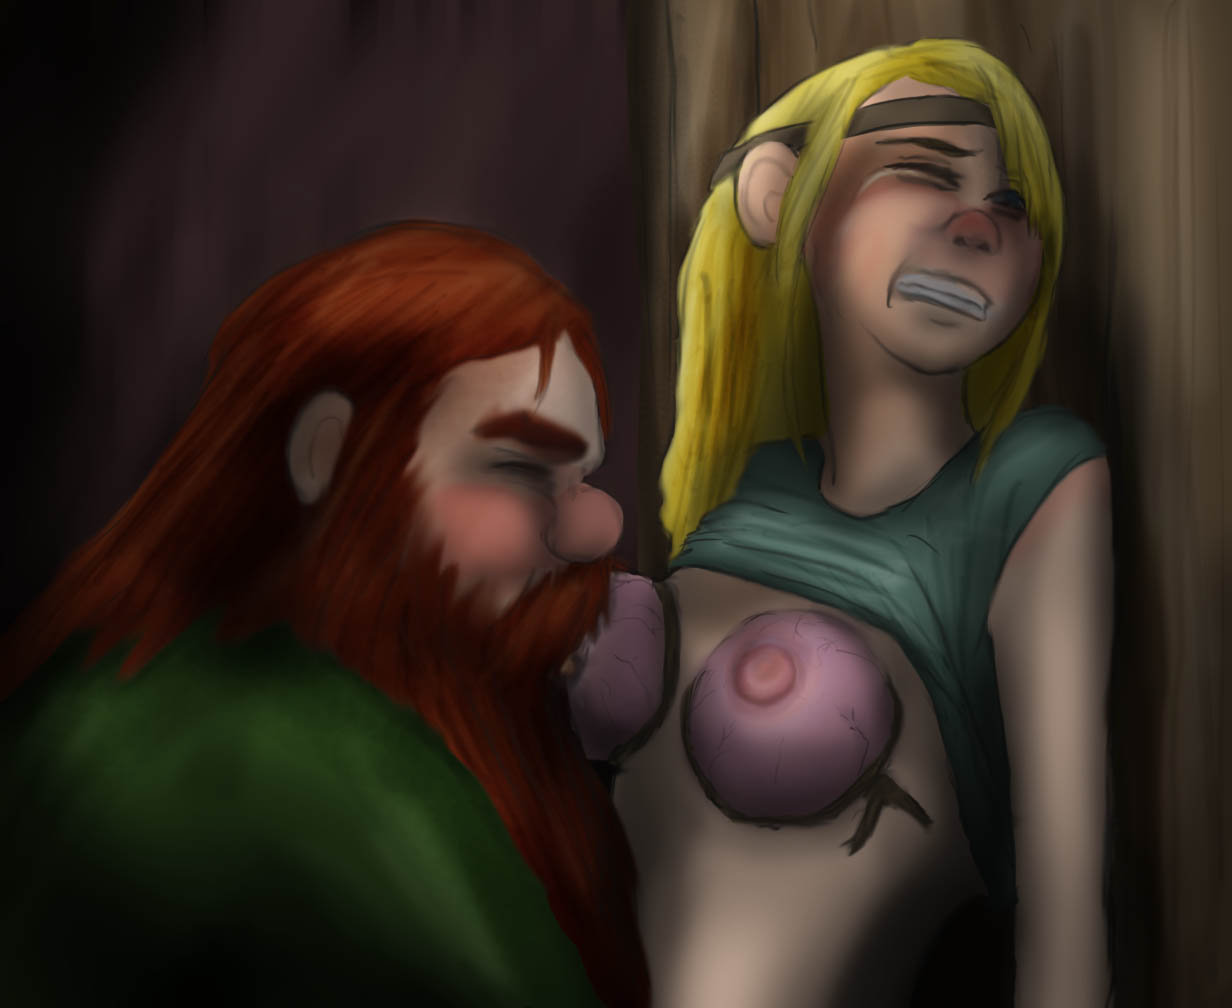 How To Train Your Dragon 2 Porn Great astrid hofferson nude - sexpics.download - erotic and porn images